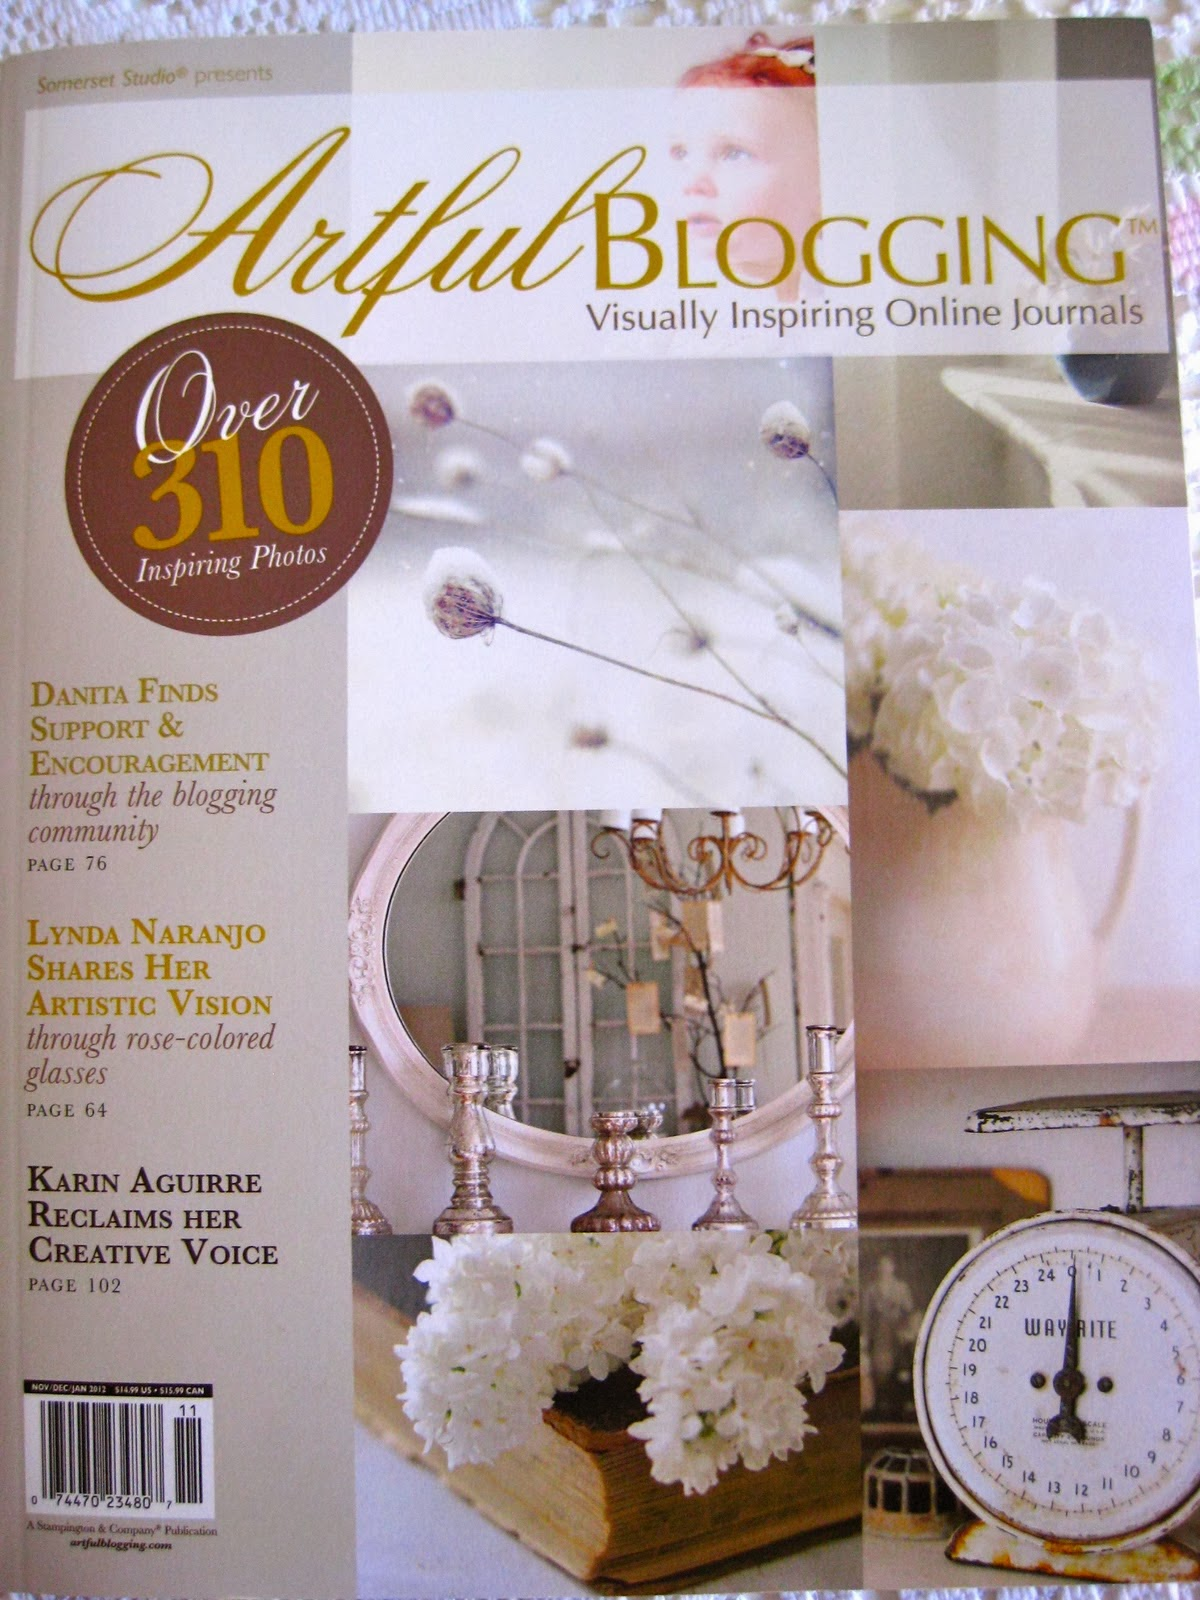 my blog Recognized in this wonderful publication!